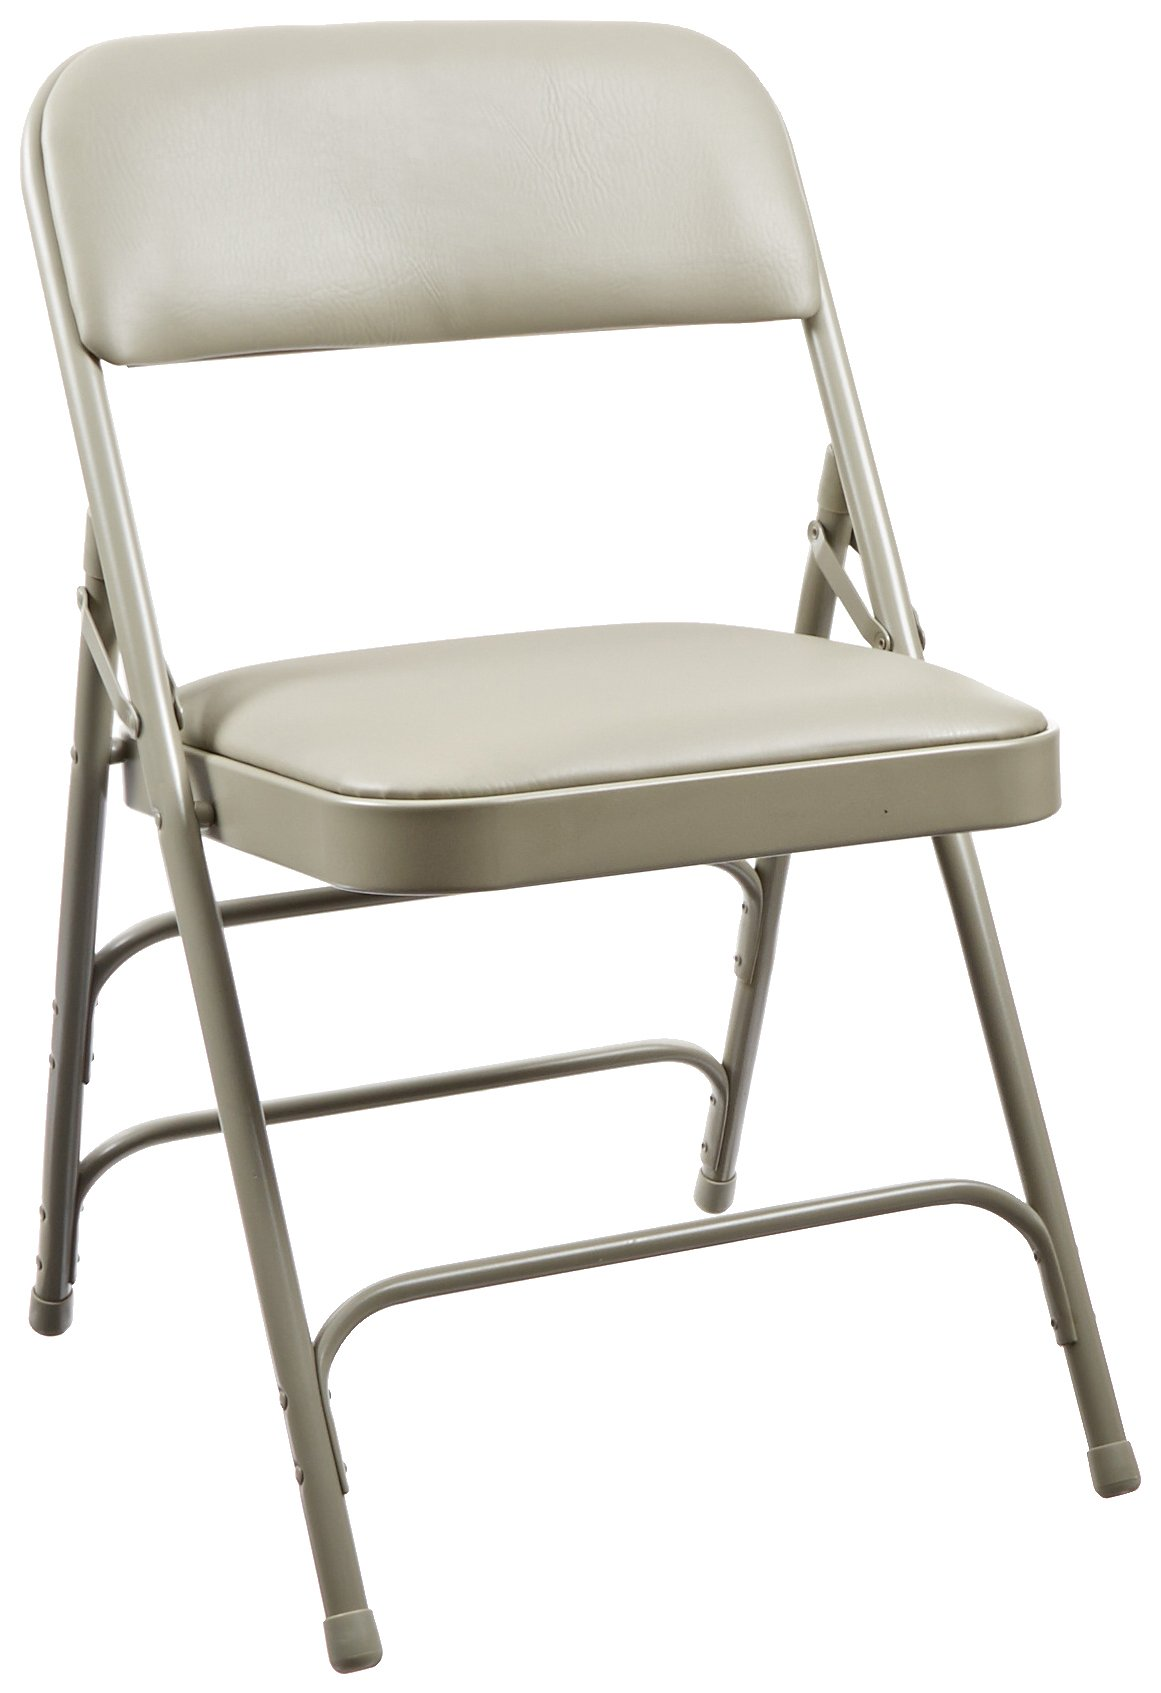 National Public Seating 1300 Series Steel Frame Upholstered Premium Vinyl Seat and Back Folding Chair with Triple Brace, 480 lbs Capacity, Warm Gray/Gray (Carton of 4)